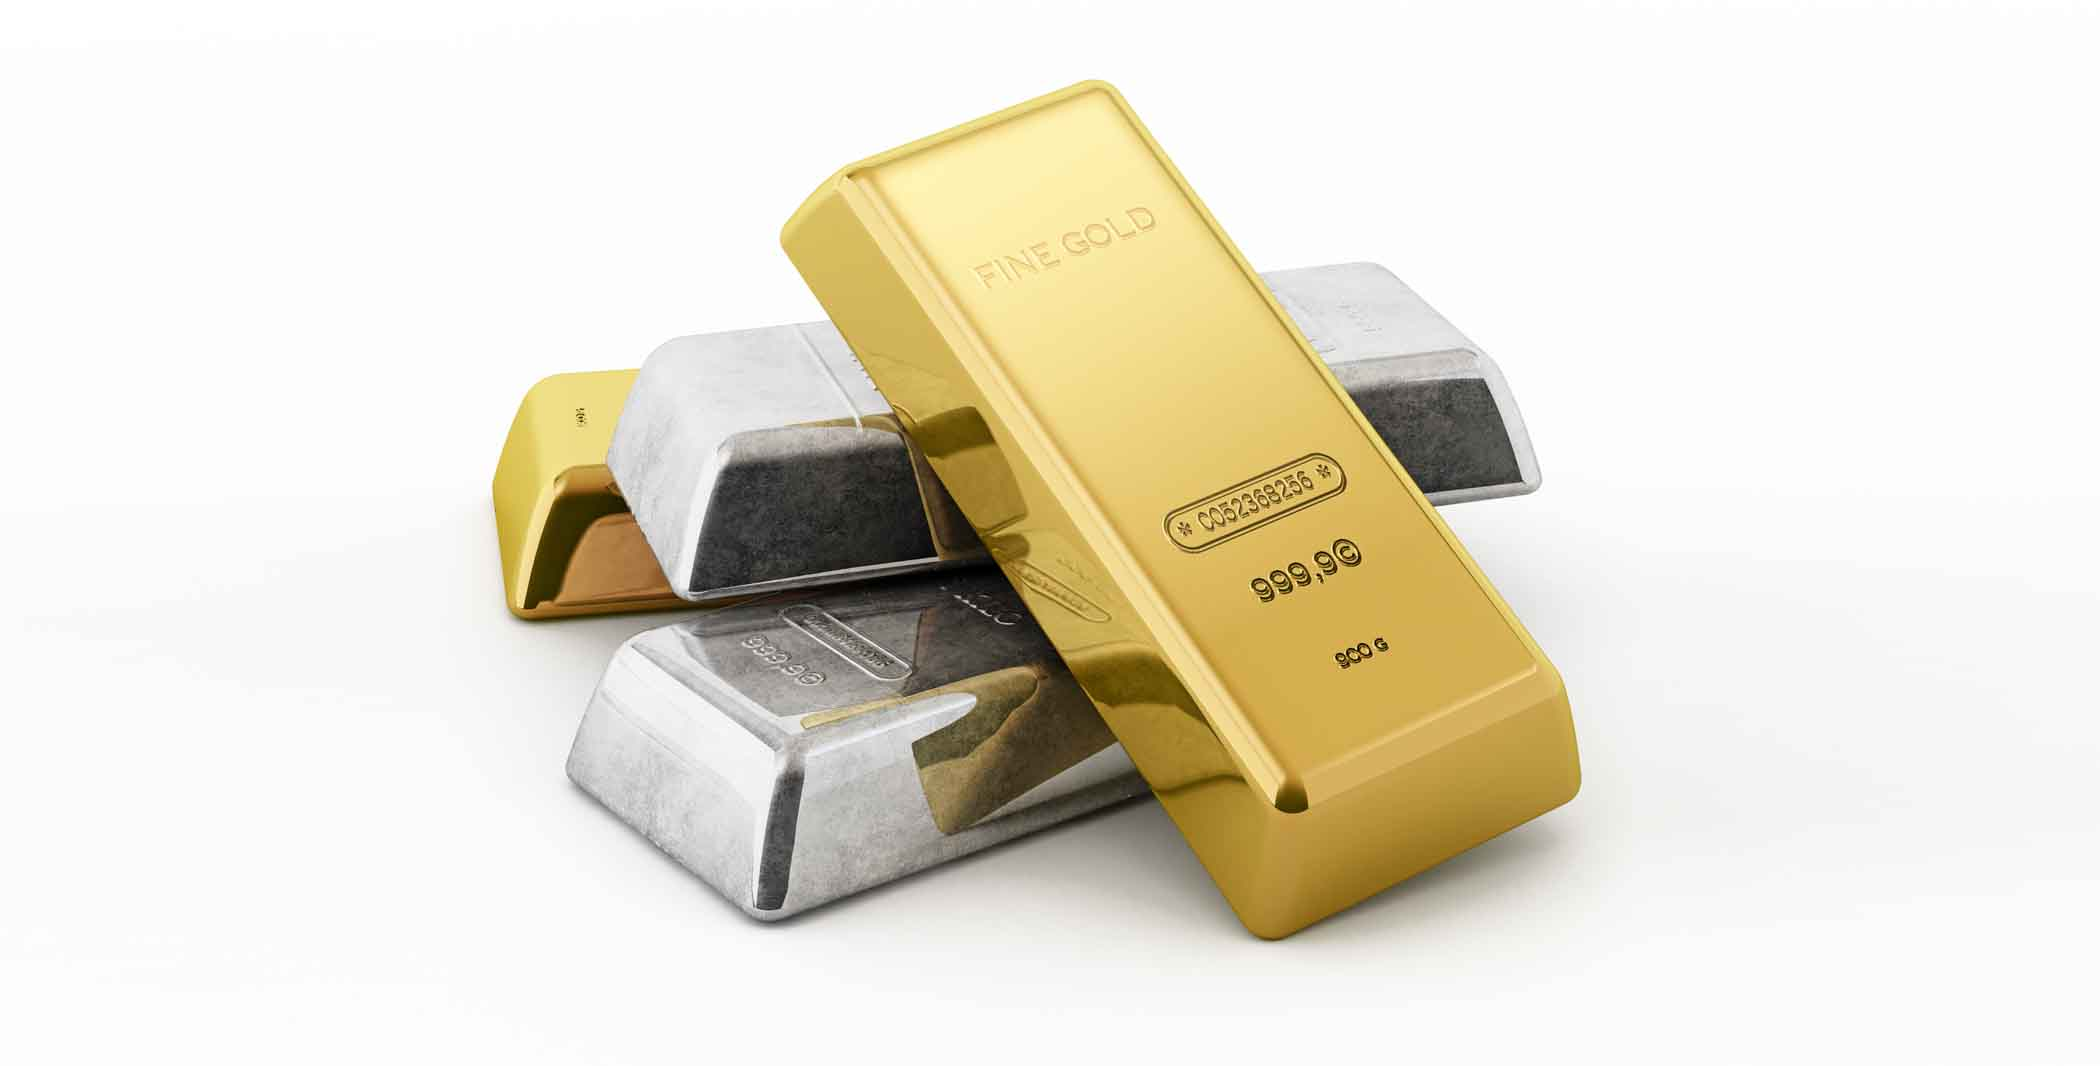 Do Gold exchange plans offer more generous coverage than Bronze or Silver plans? photo